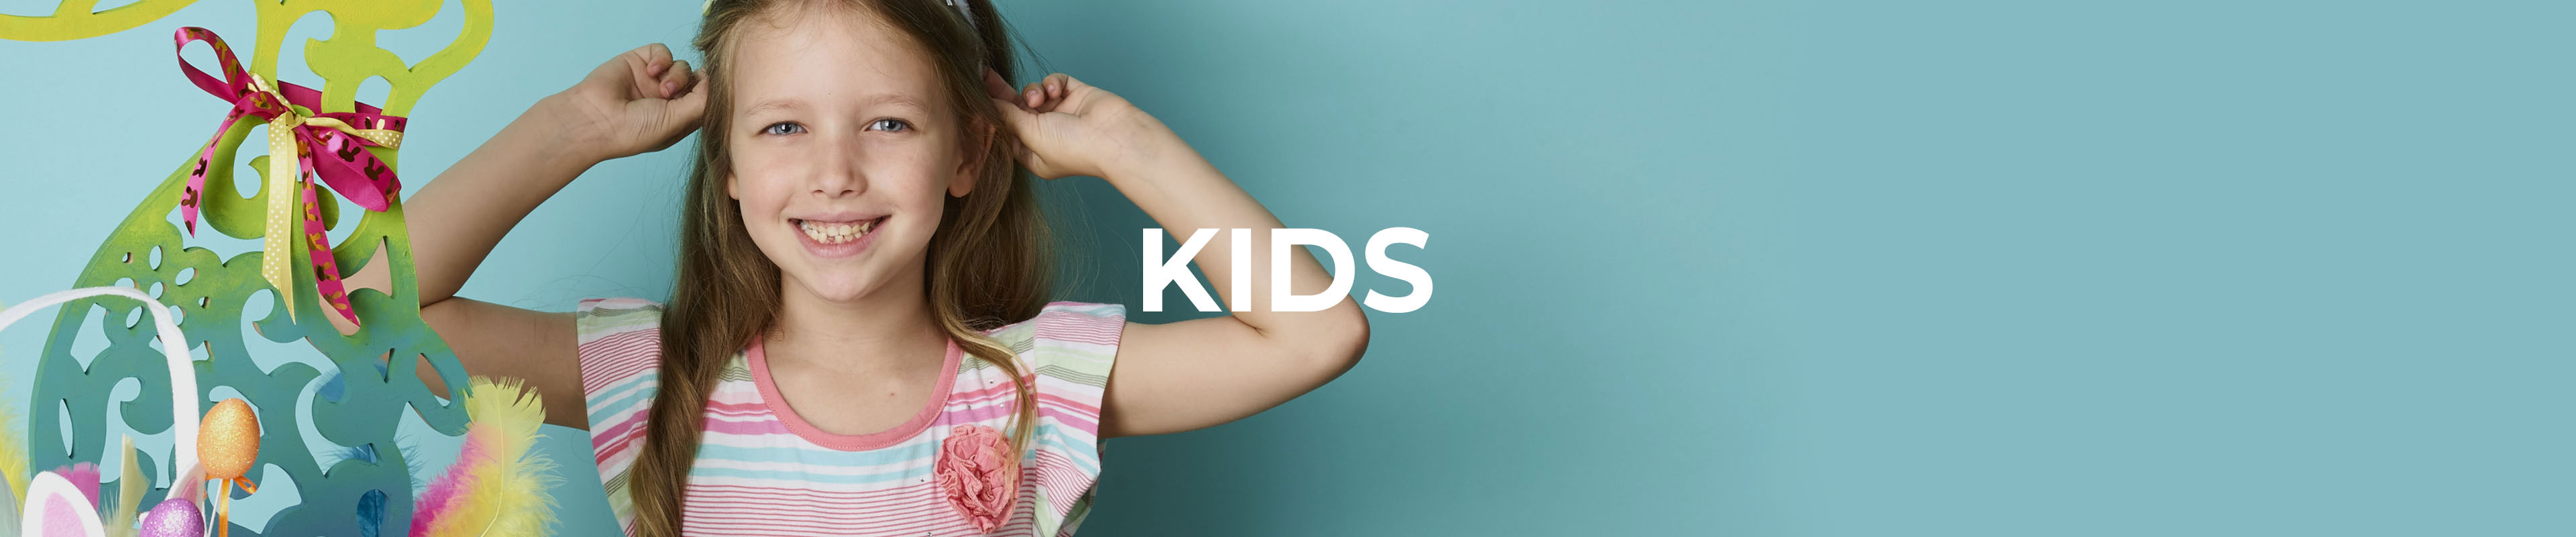 Shop Our Kids Range